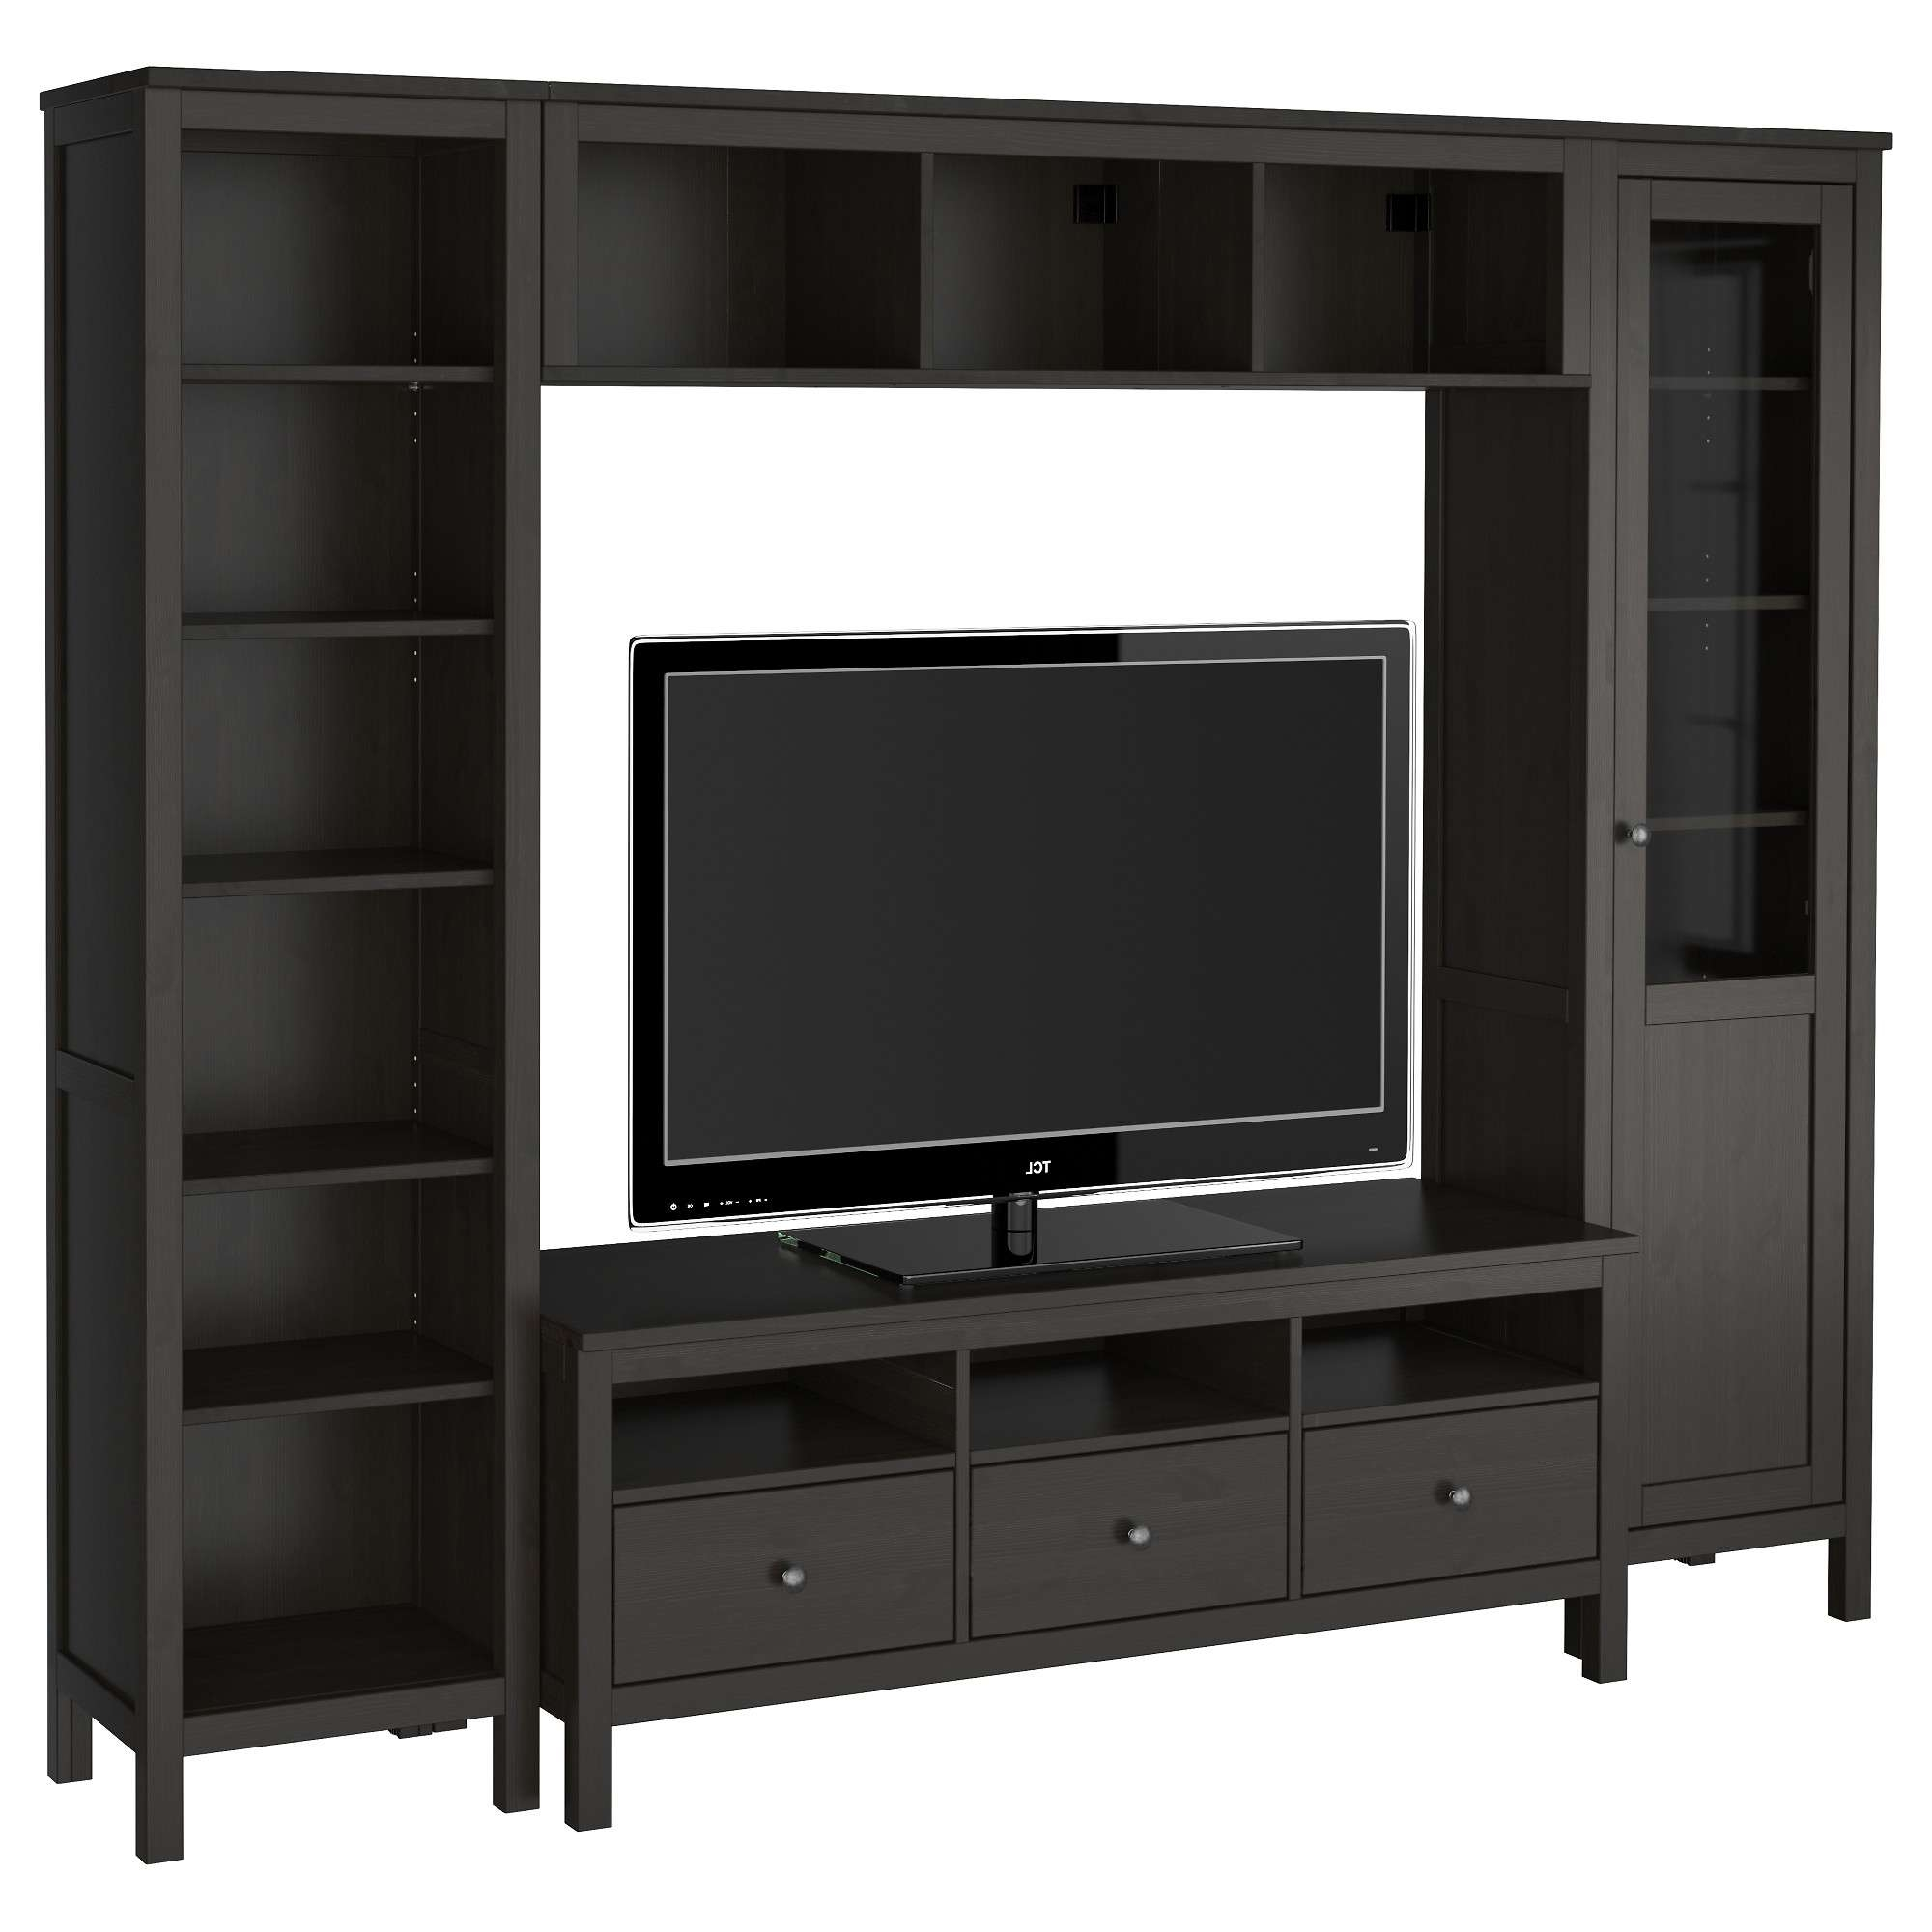 Hemnes Tv Storage Combination Black Brown Media And Furniture Cm Regarding Tall Black Tv Cabinets (View 6 of 20)